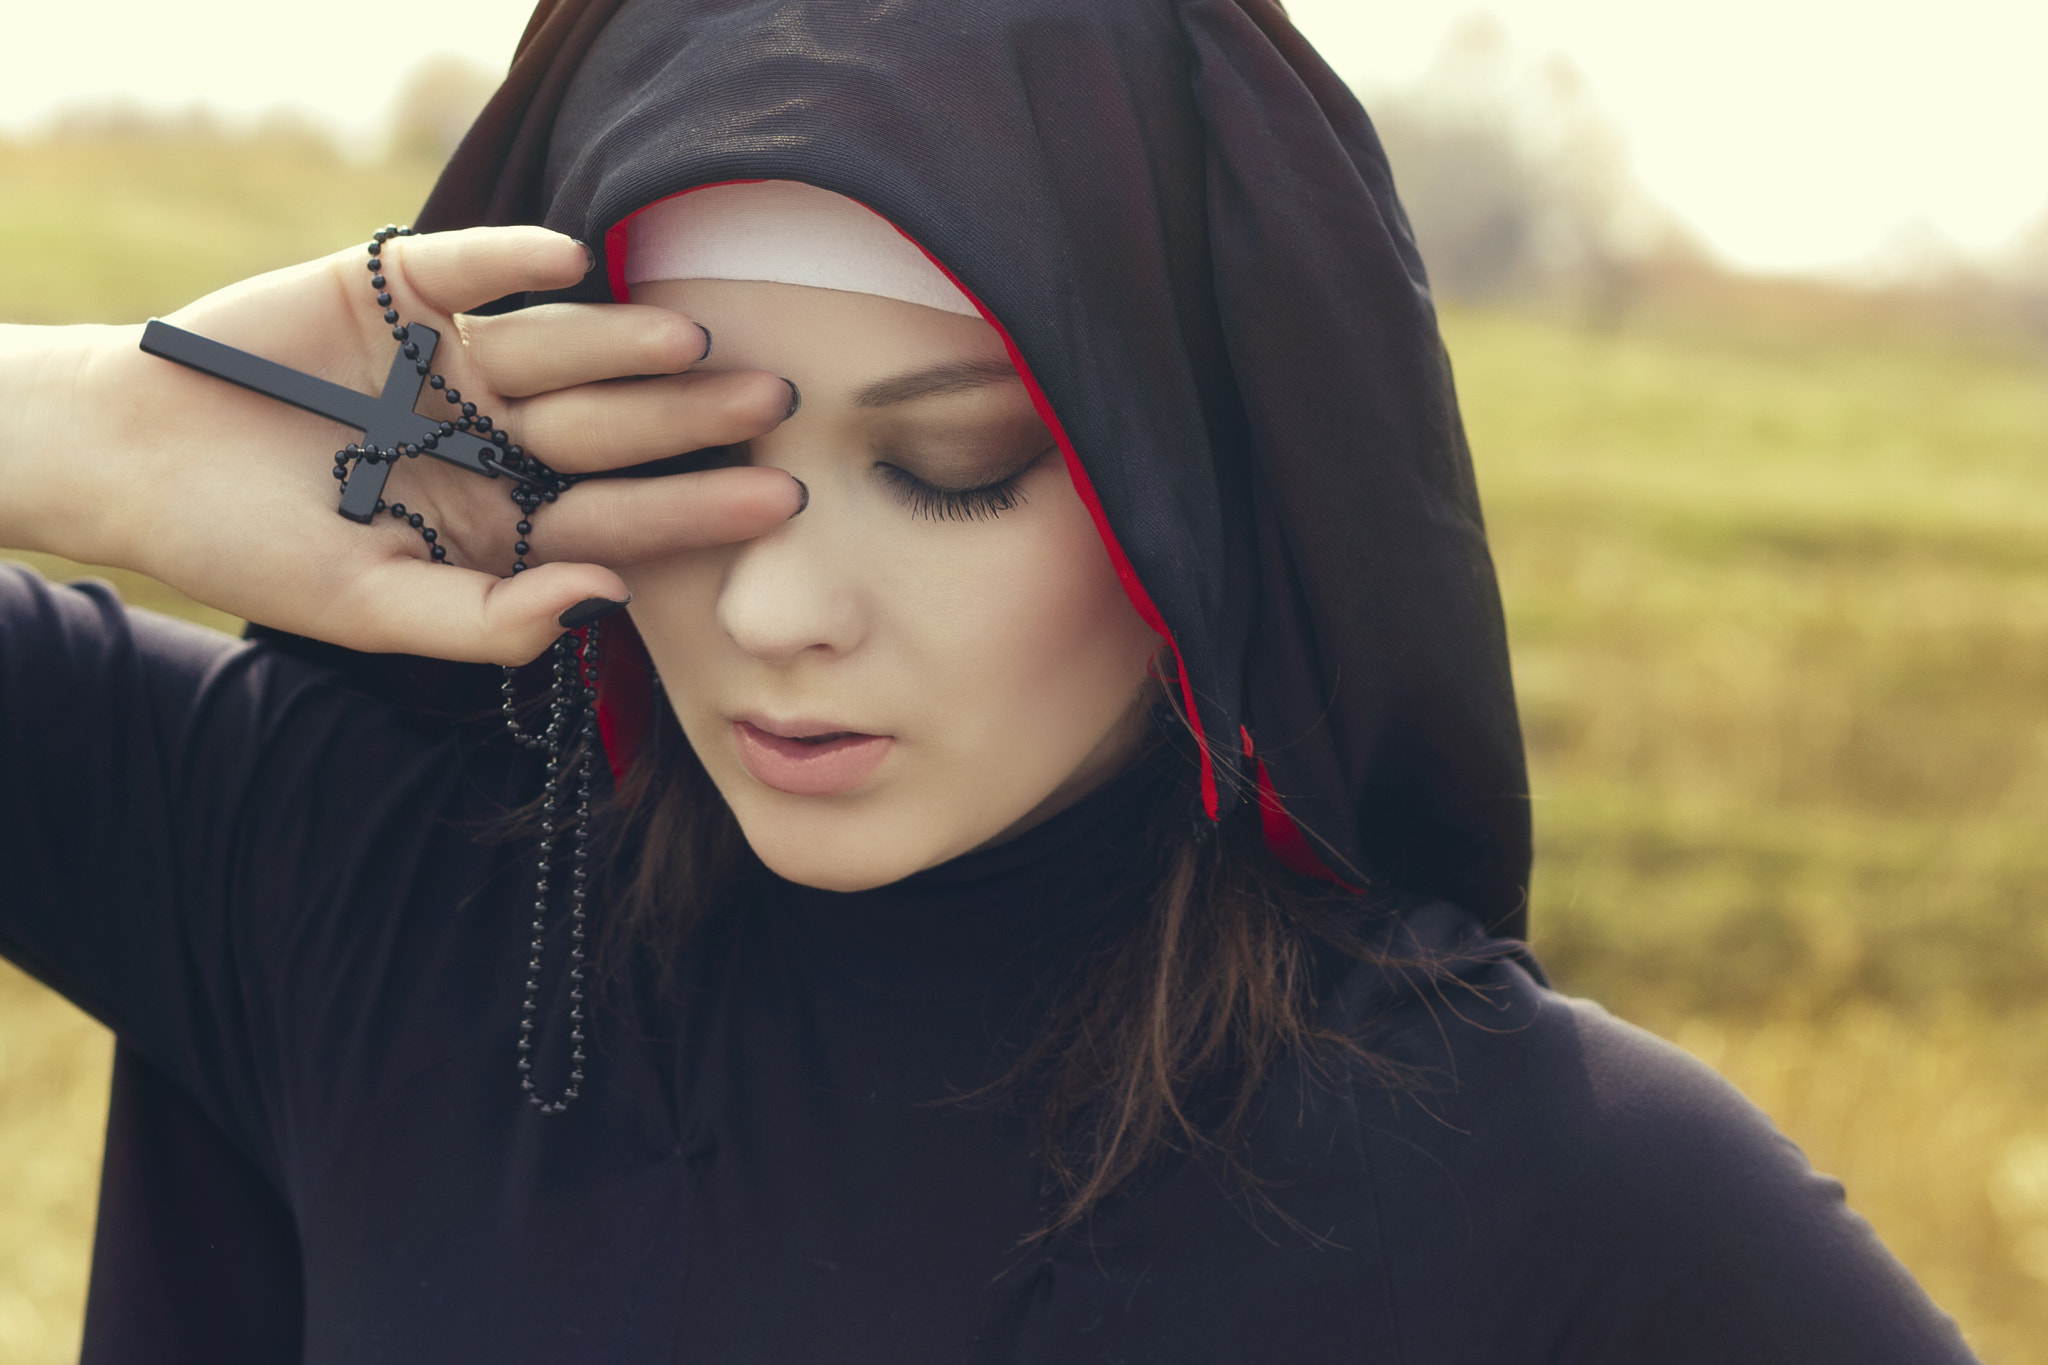 Photograph Fateful nun by Dmitry Patlay on 500px